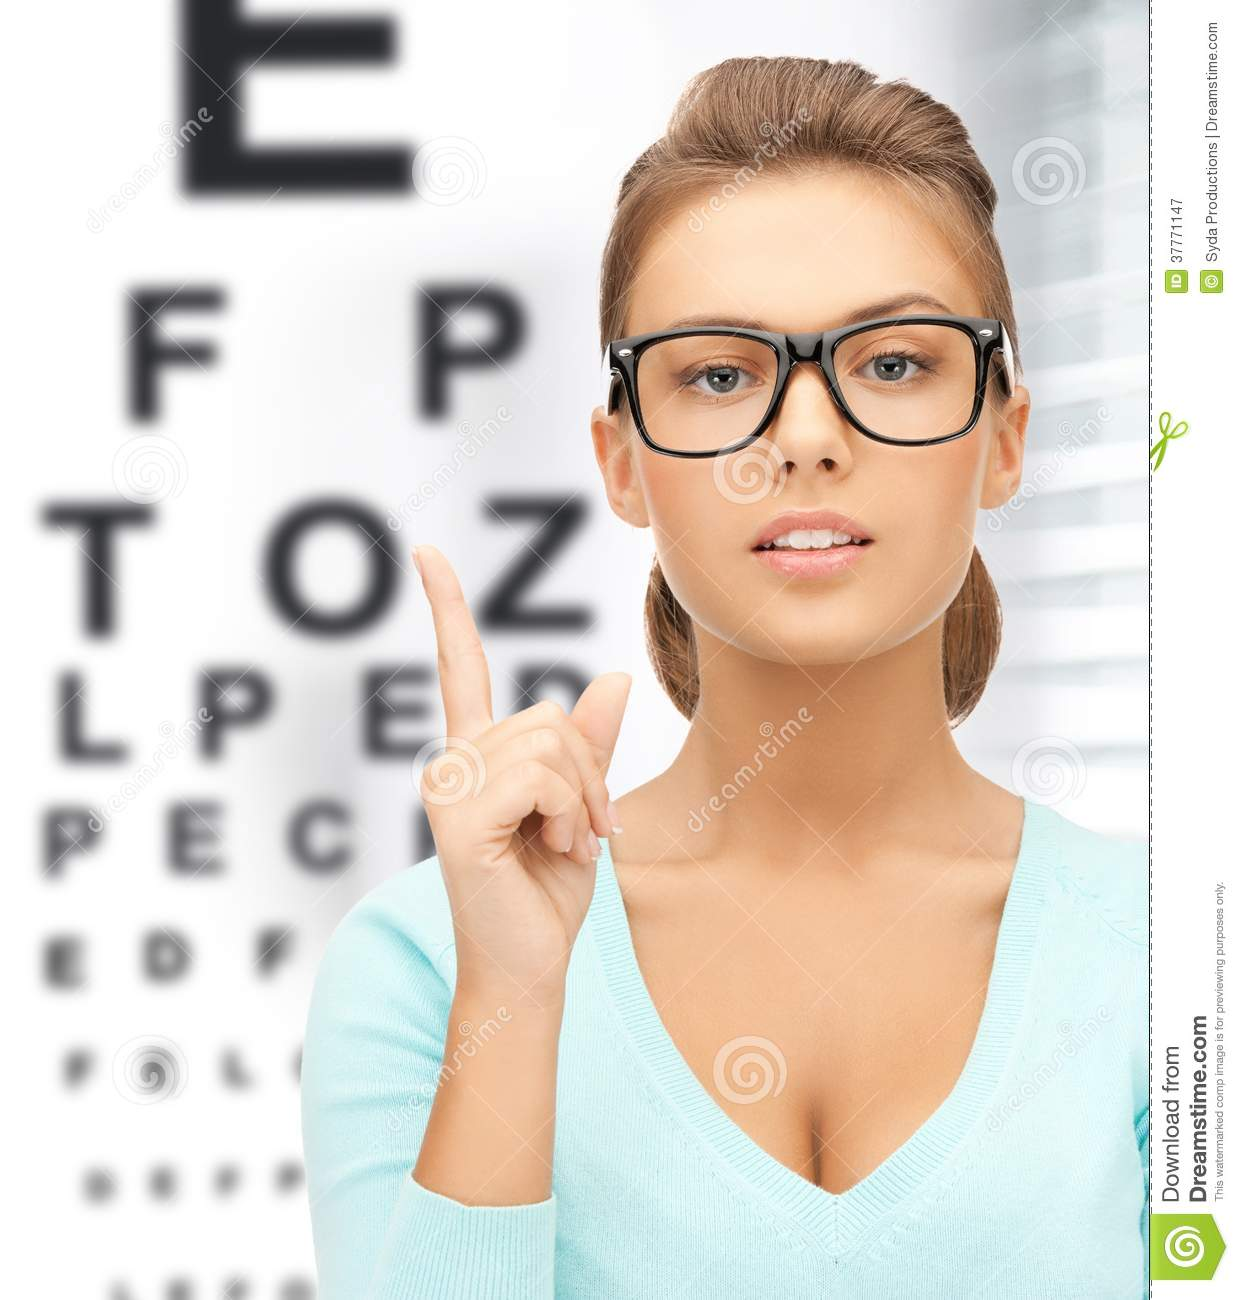 Naked woman eye chart